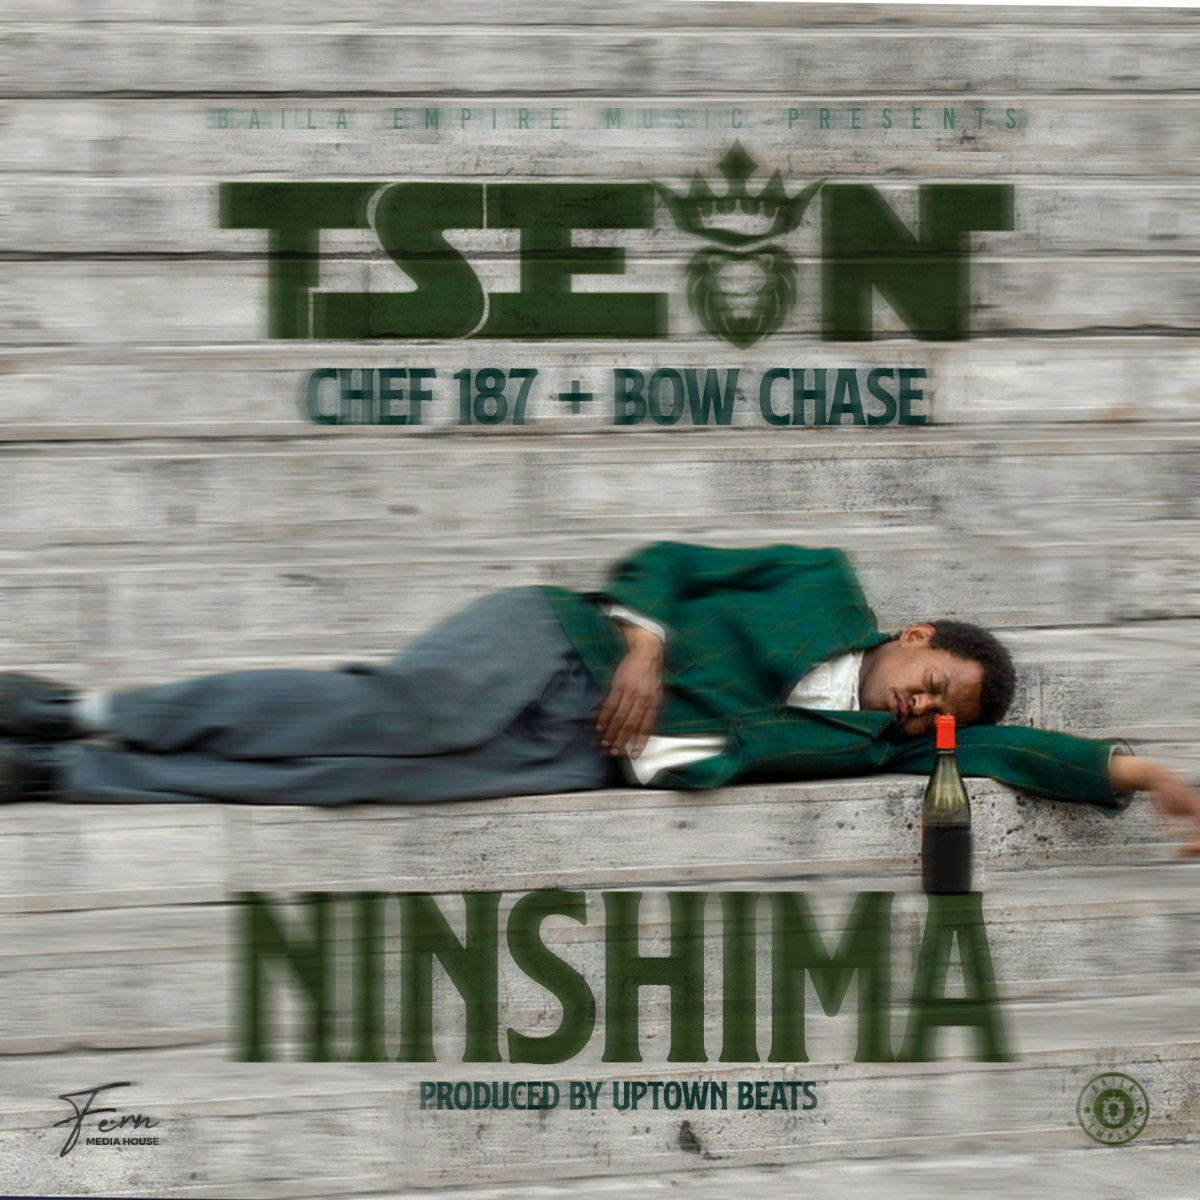 T-Sean ft. Chef 187 & Bow Chase - Ninshima